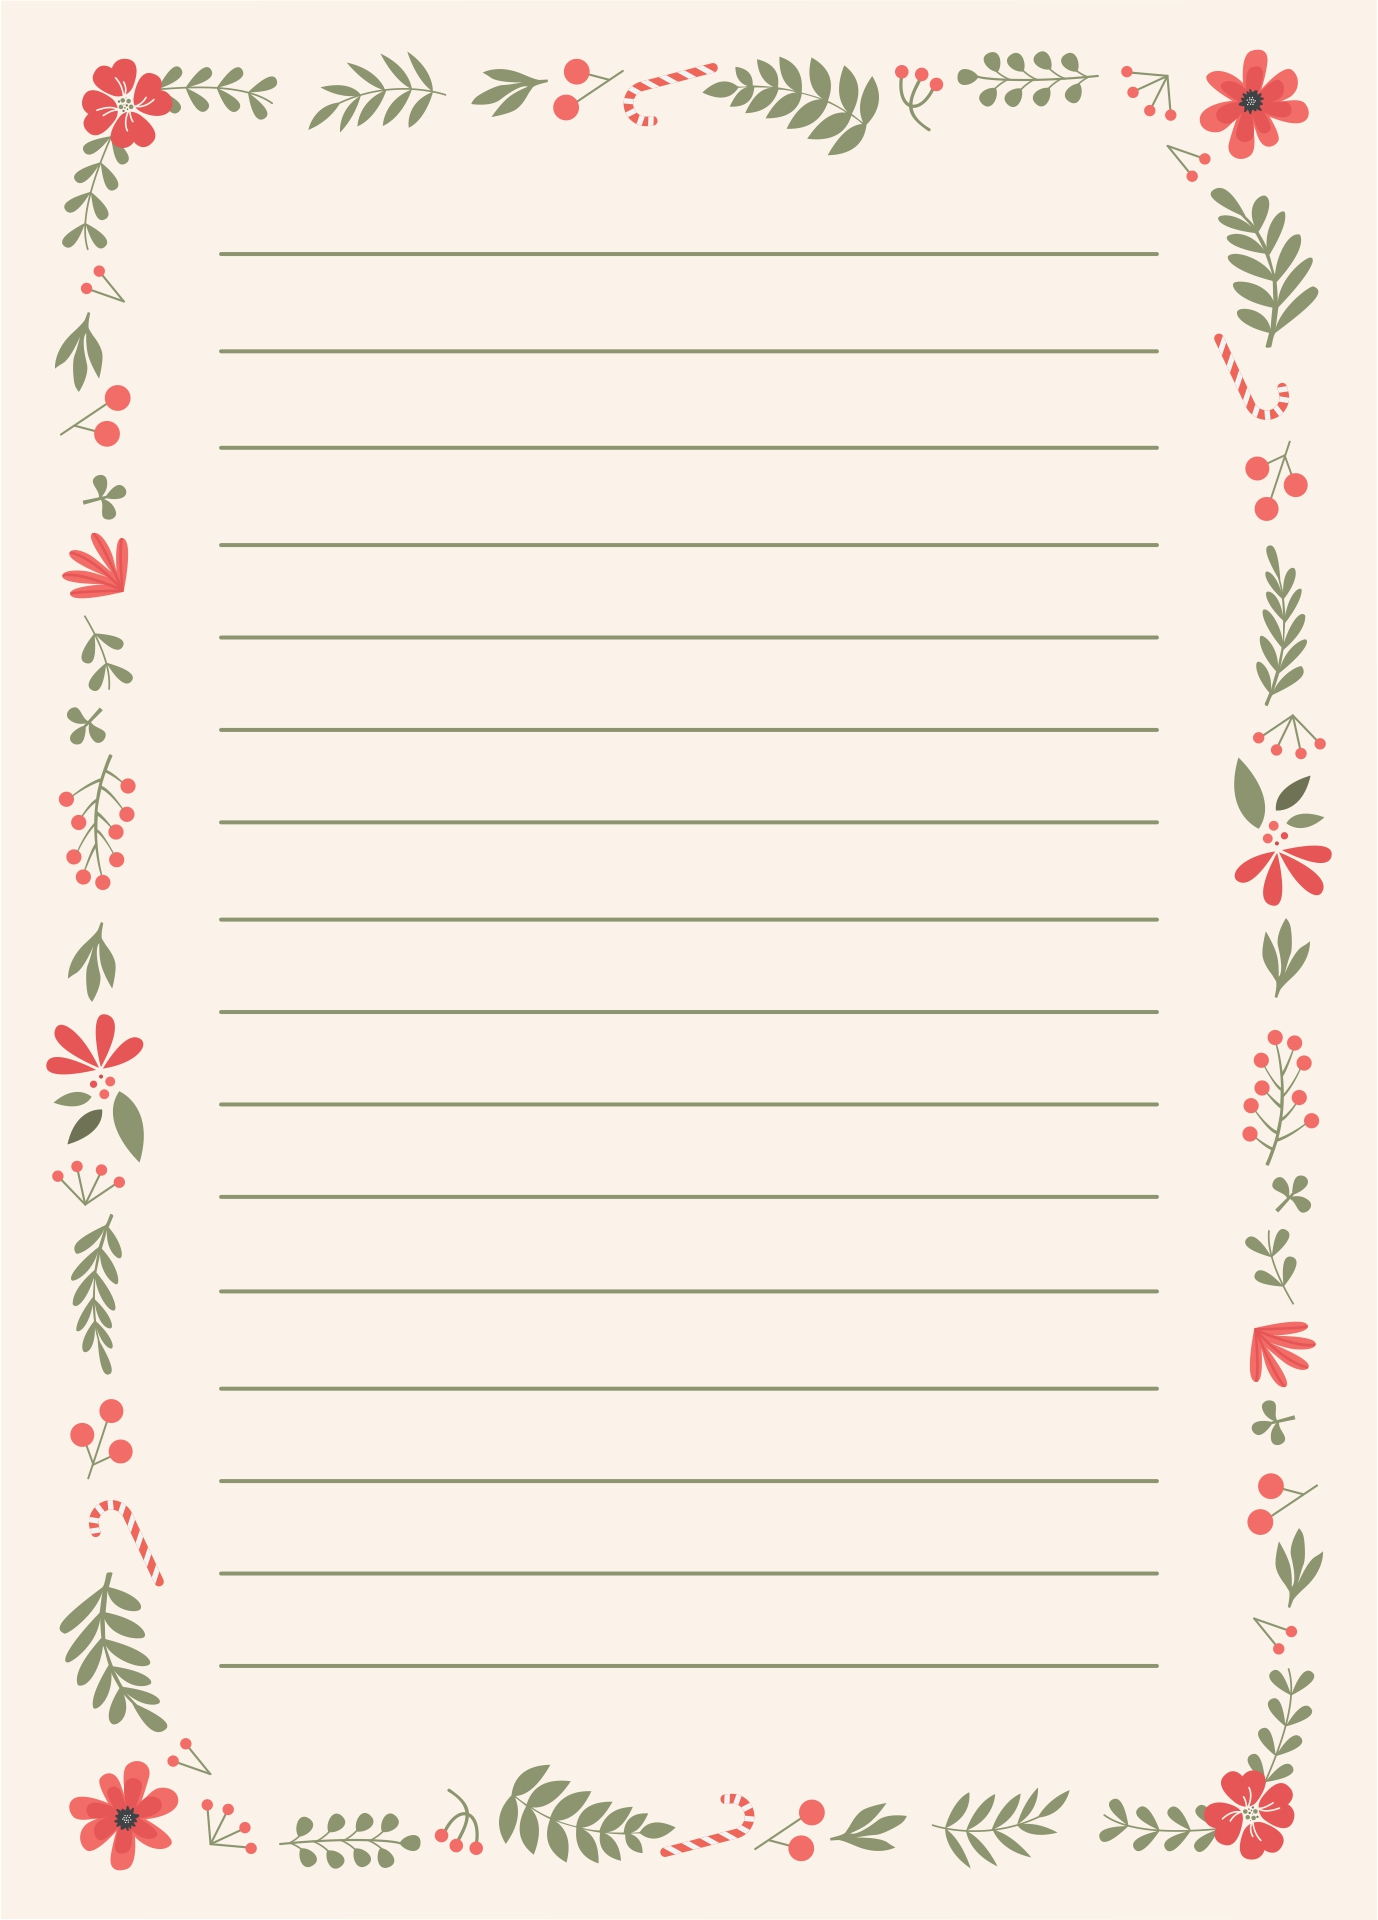 9 Images of Printable Holiday Letterhead Paper